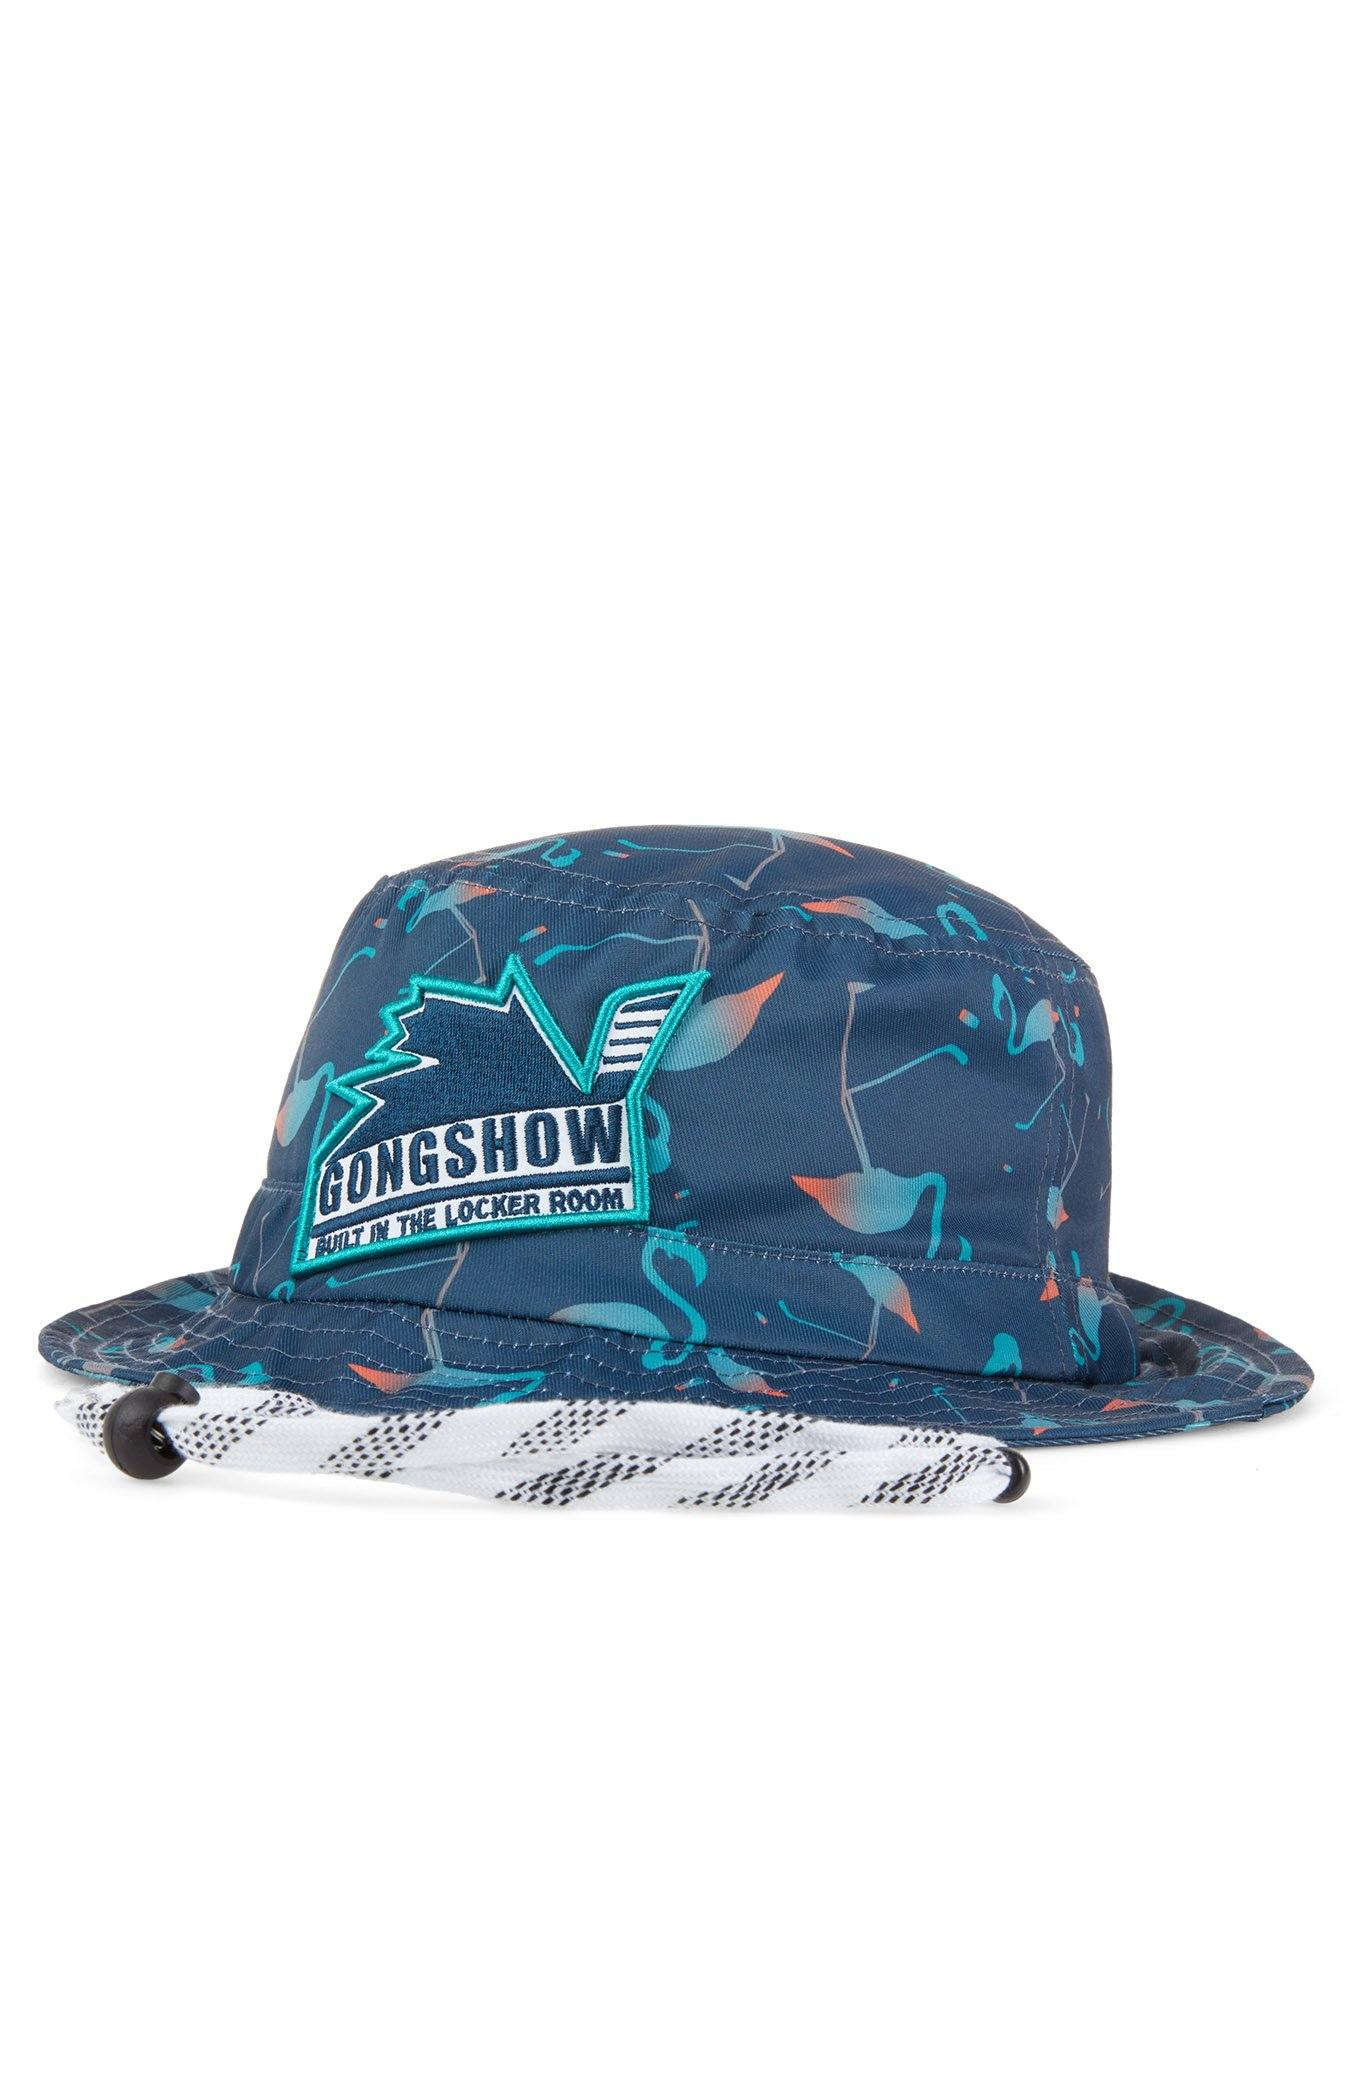 8396d23f44a No Divers Blue Men s Spring Hockey Bucket Hat – GONGSHOW Canada